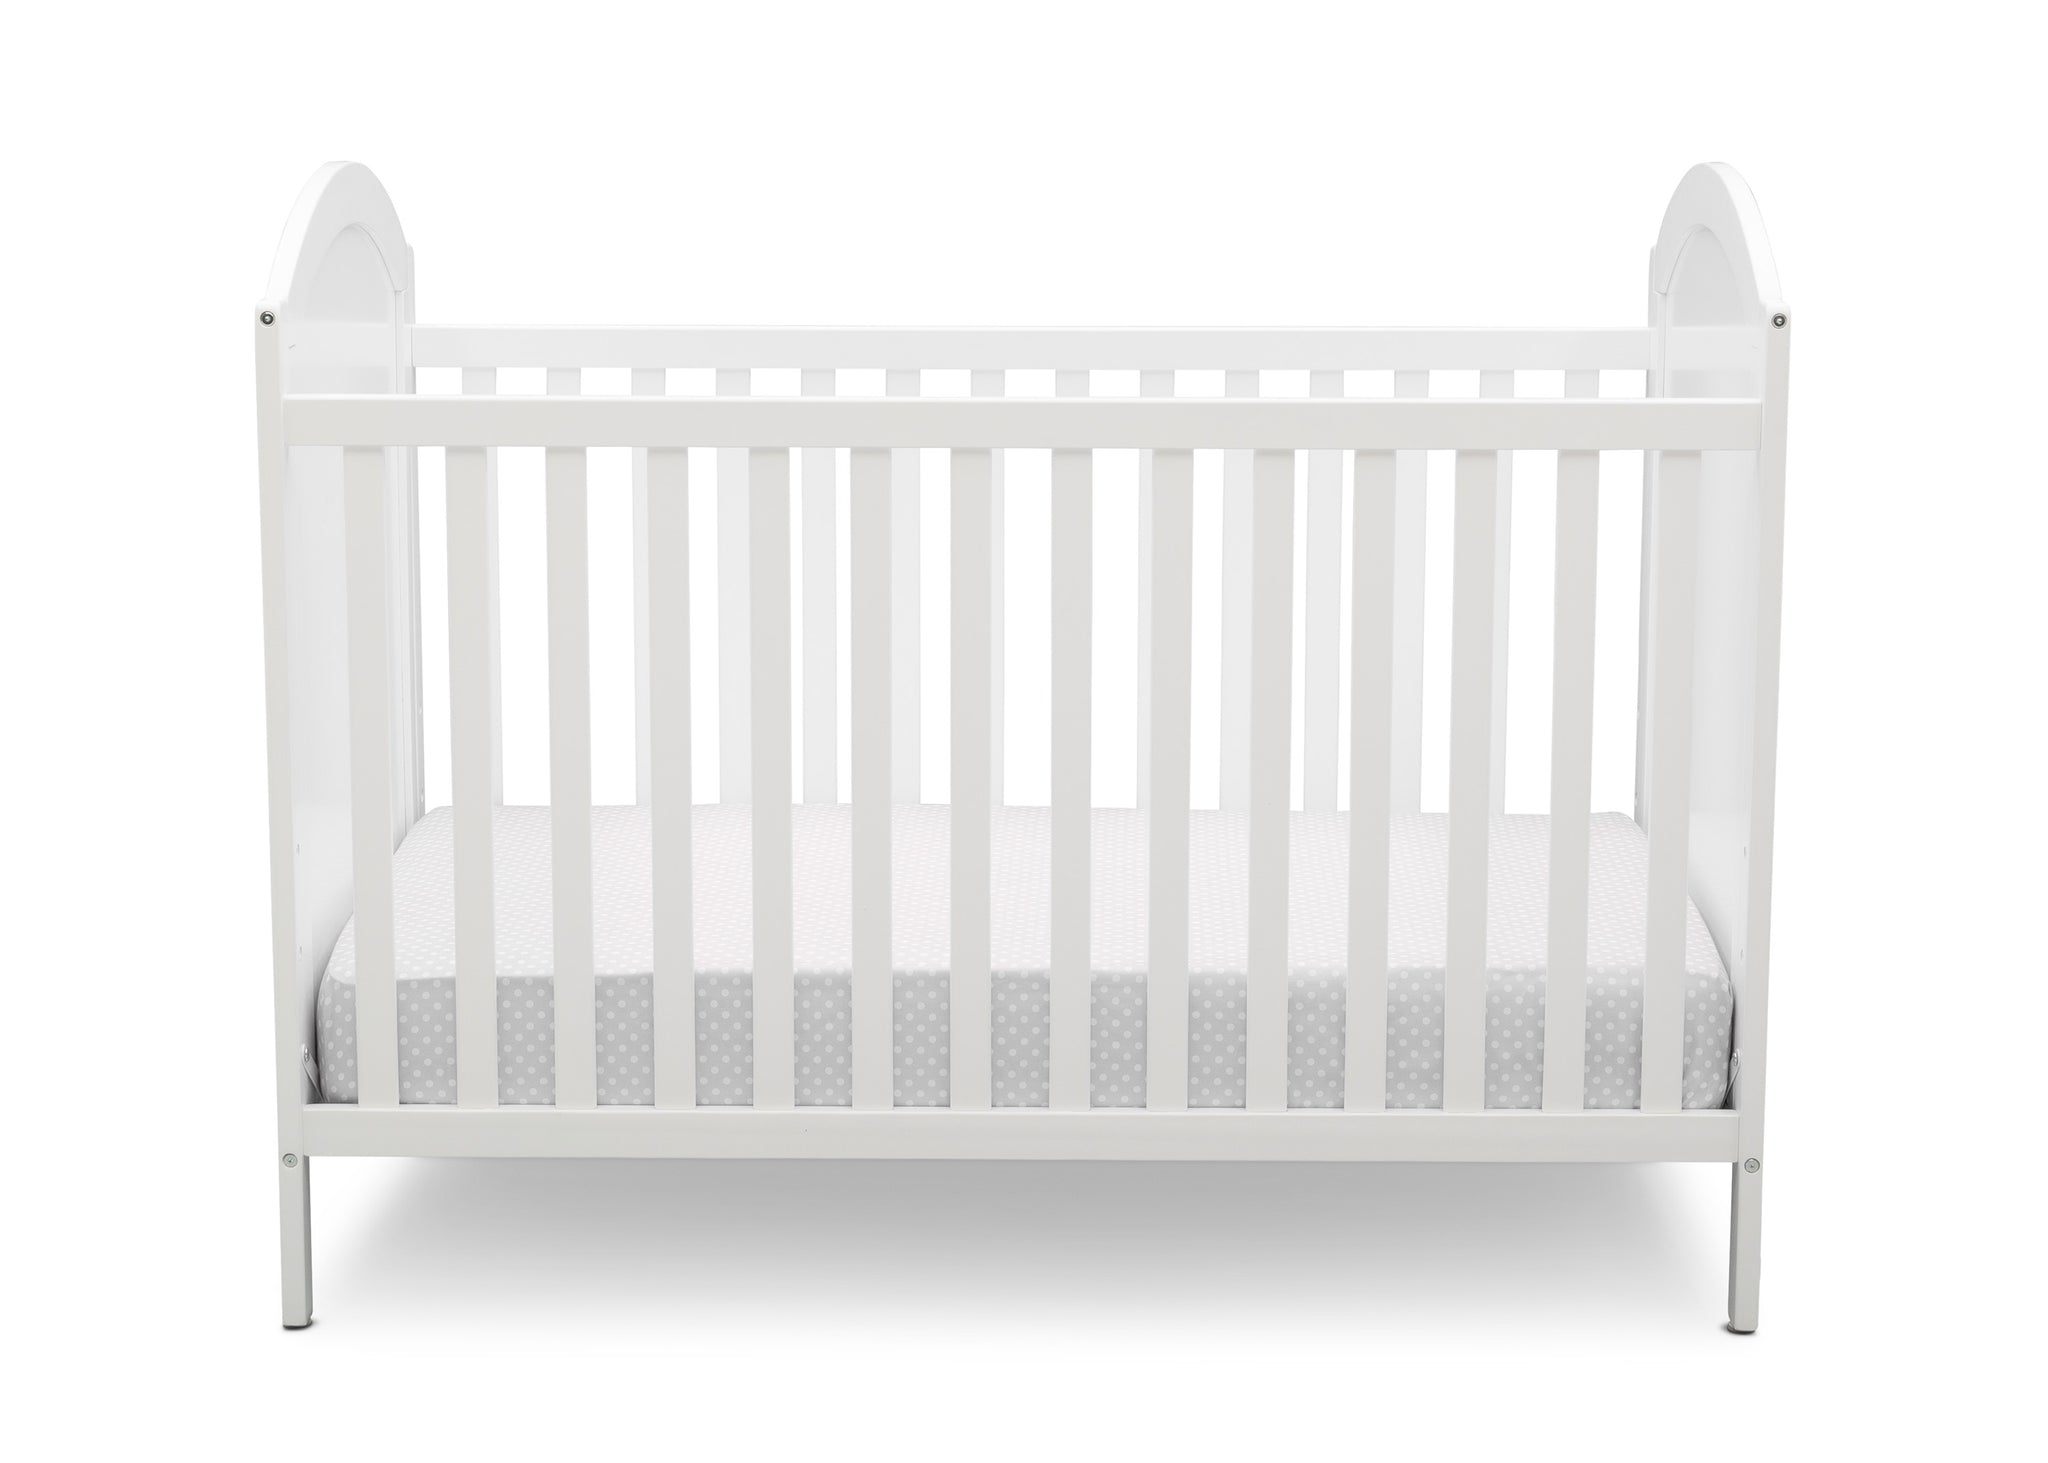 Disney Bianca White with Minnie Mouse (1302) Minnie Mouse 4-in-1 Convertible Crib by Delta Children, Front Silo View